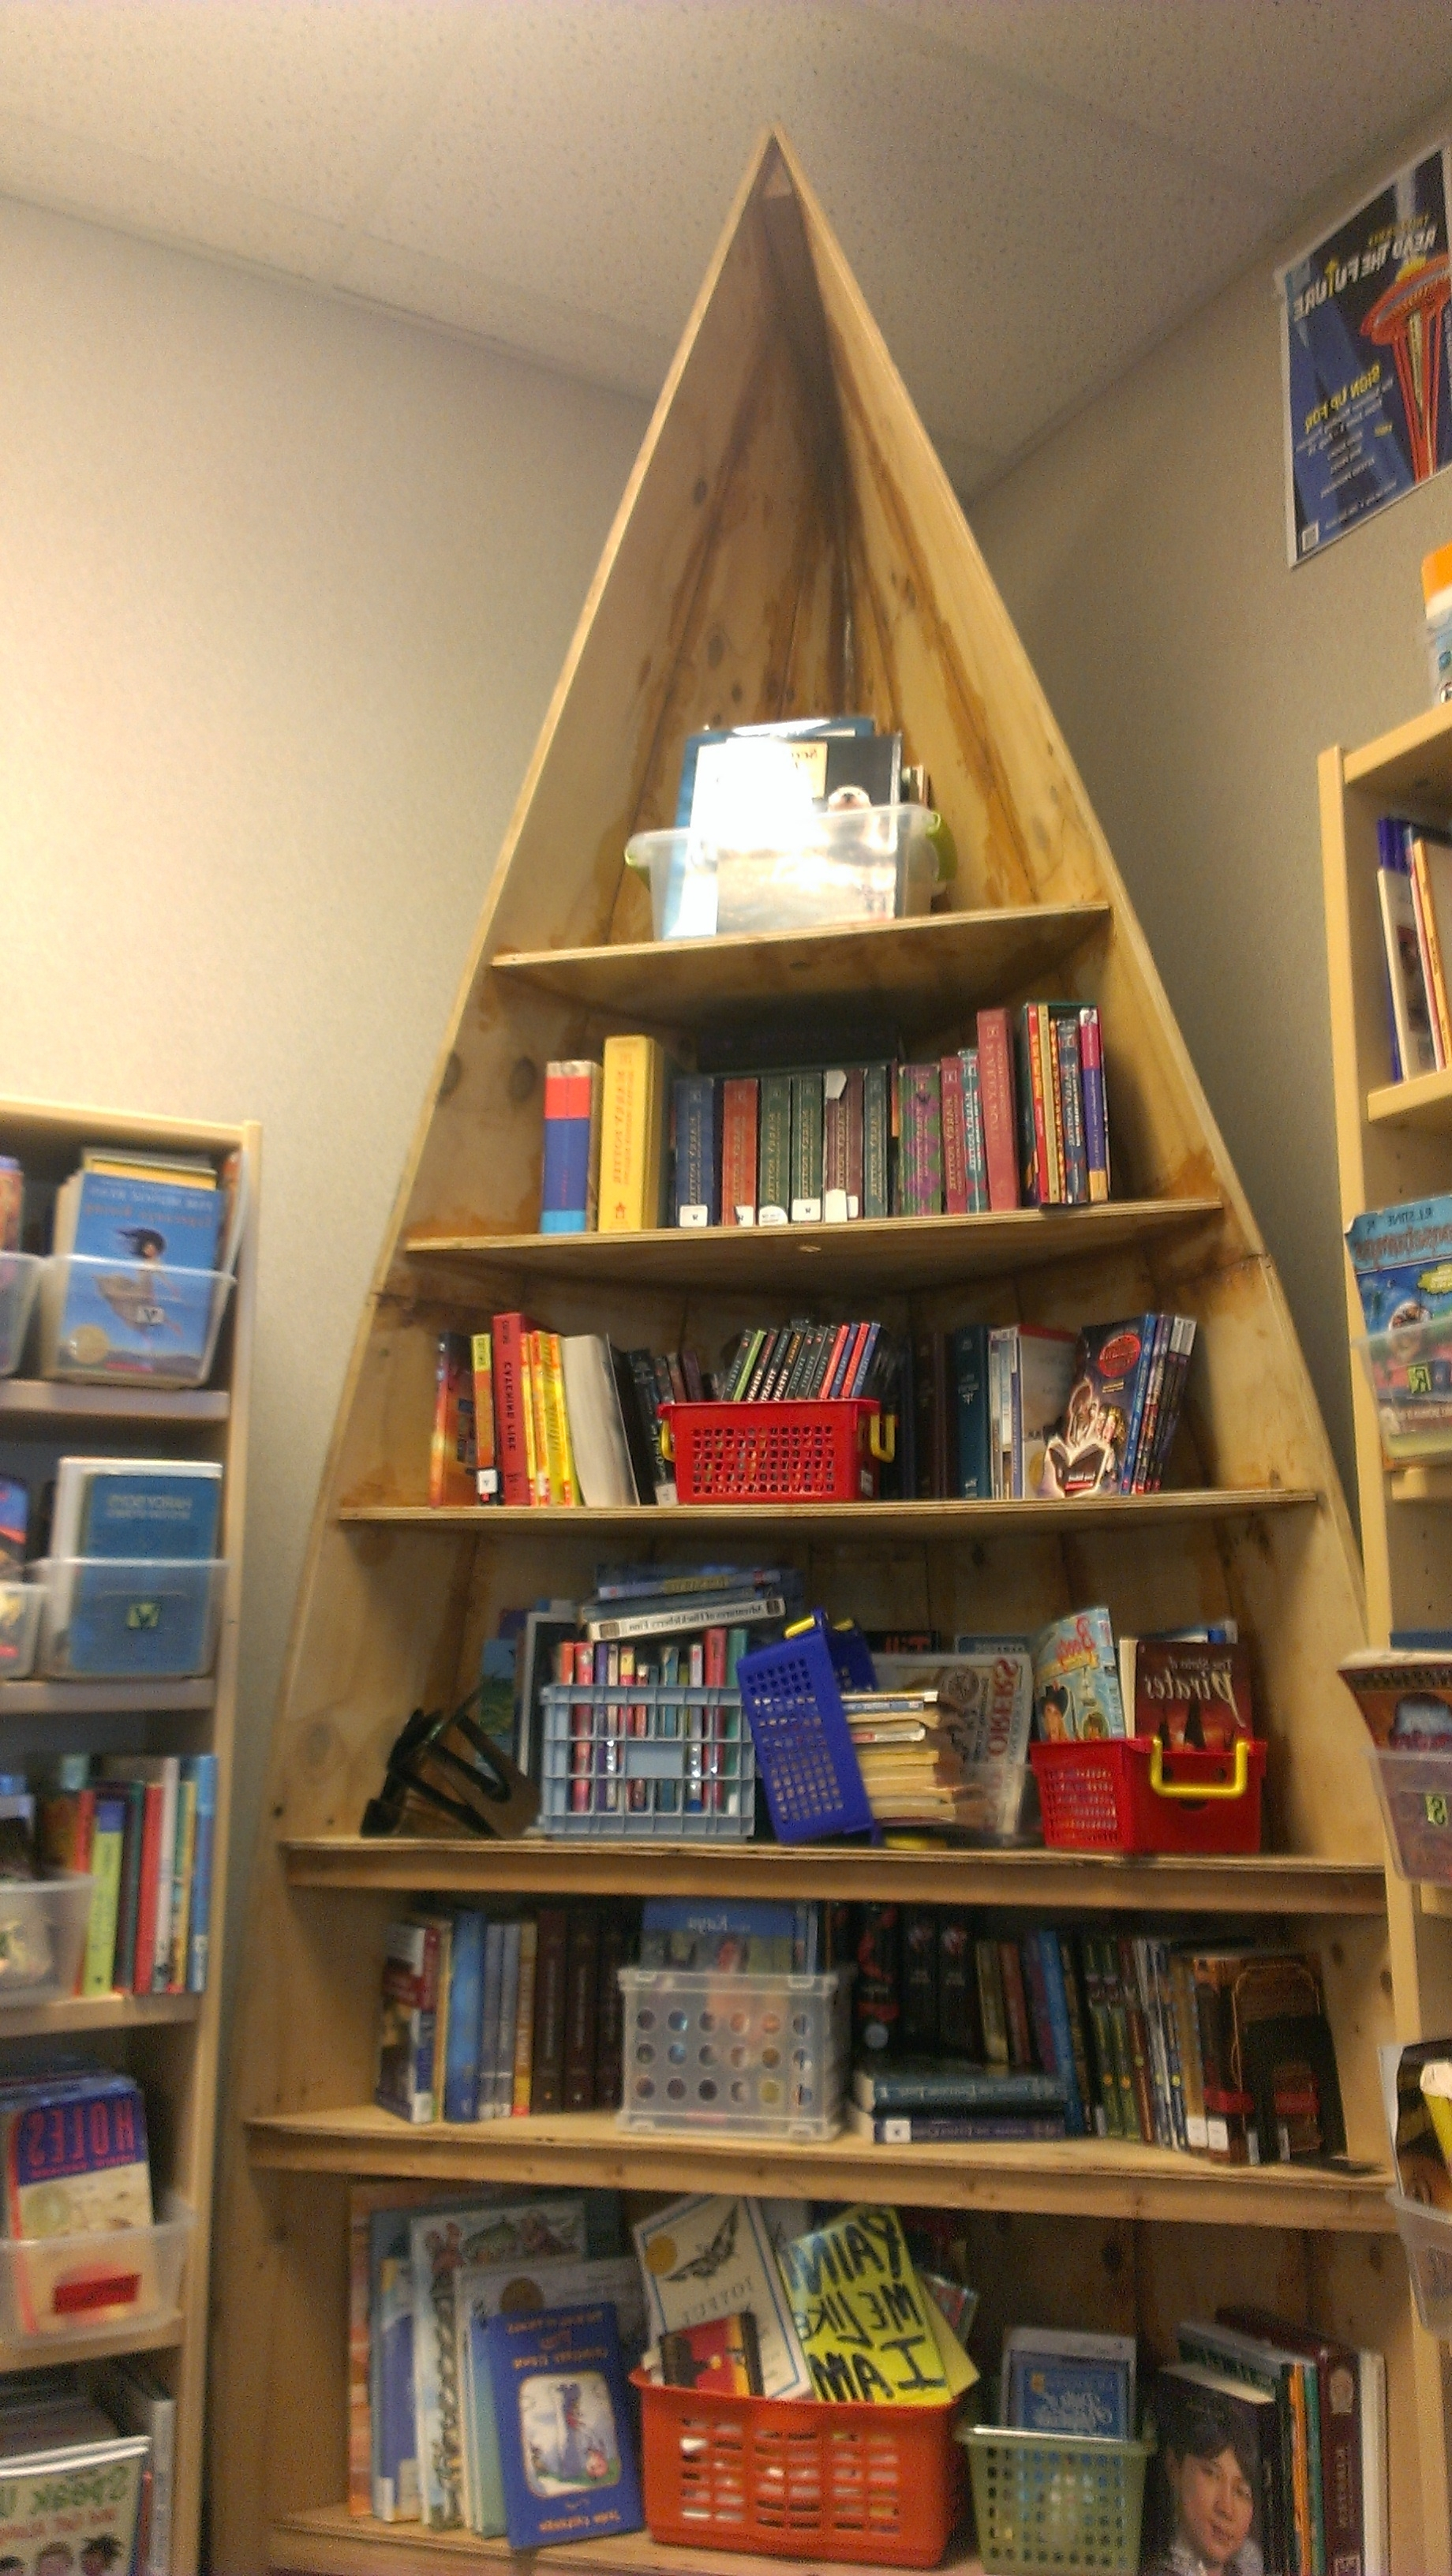 Widely Used Boat Shaped Bookcases In Diy Boat Bookshelf In A Classroom At Pathfinder K 8, A Seattle (View 12 of 15)